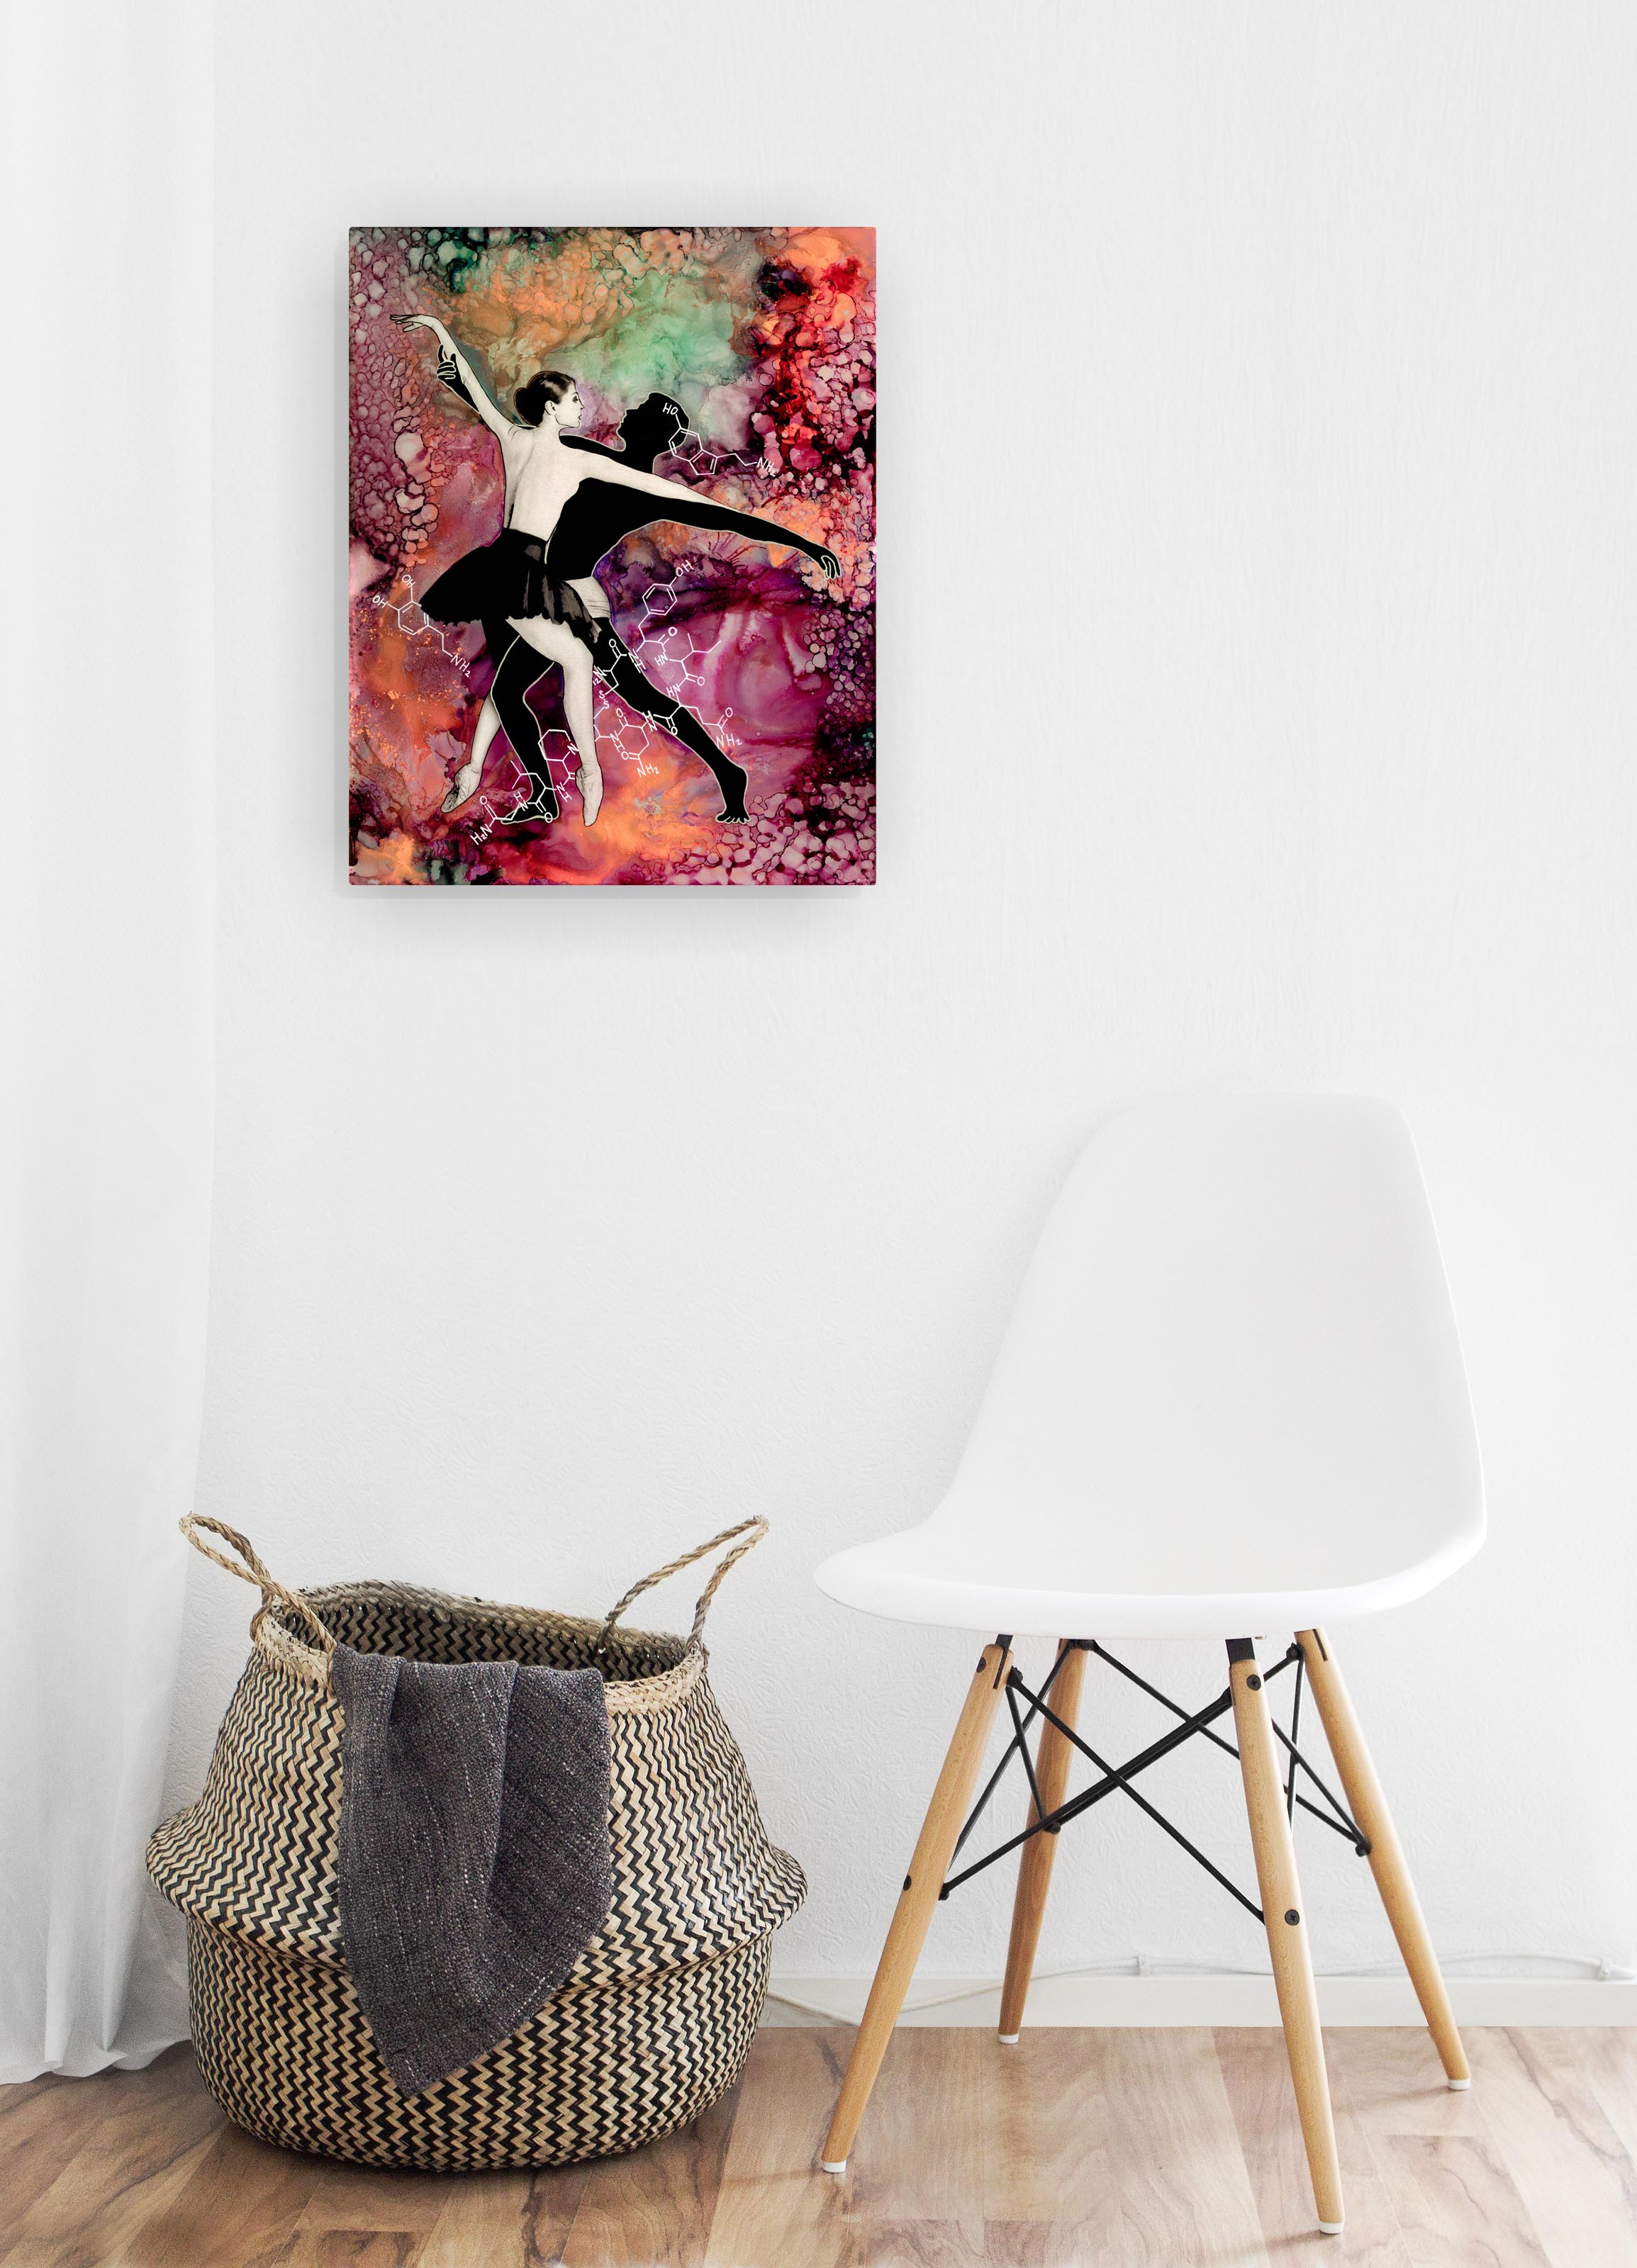 "Hanging Wall Prints - 16"" x 20"" contemporary prints on recycled aluminum with a glossy finish and mounted to float off the wall 3/4""."